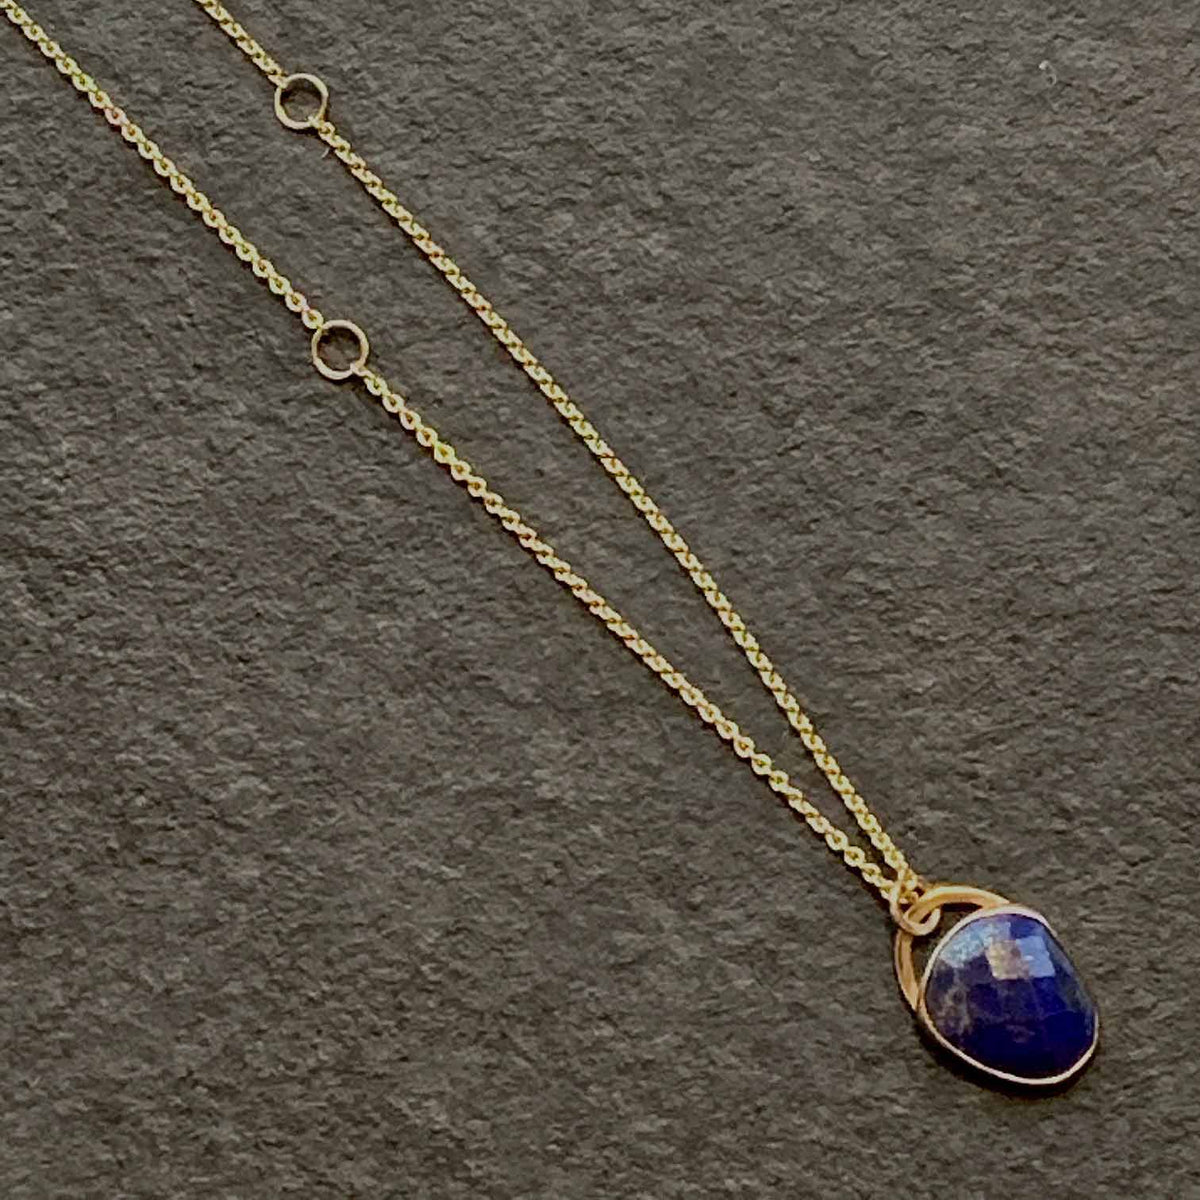 Jane Hollinger 14 Karat Yellow Gold Lapis Lazuli Necklace